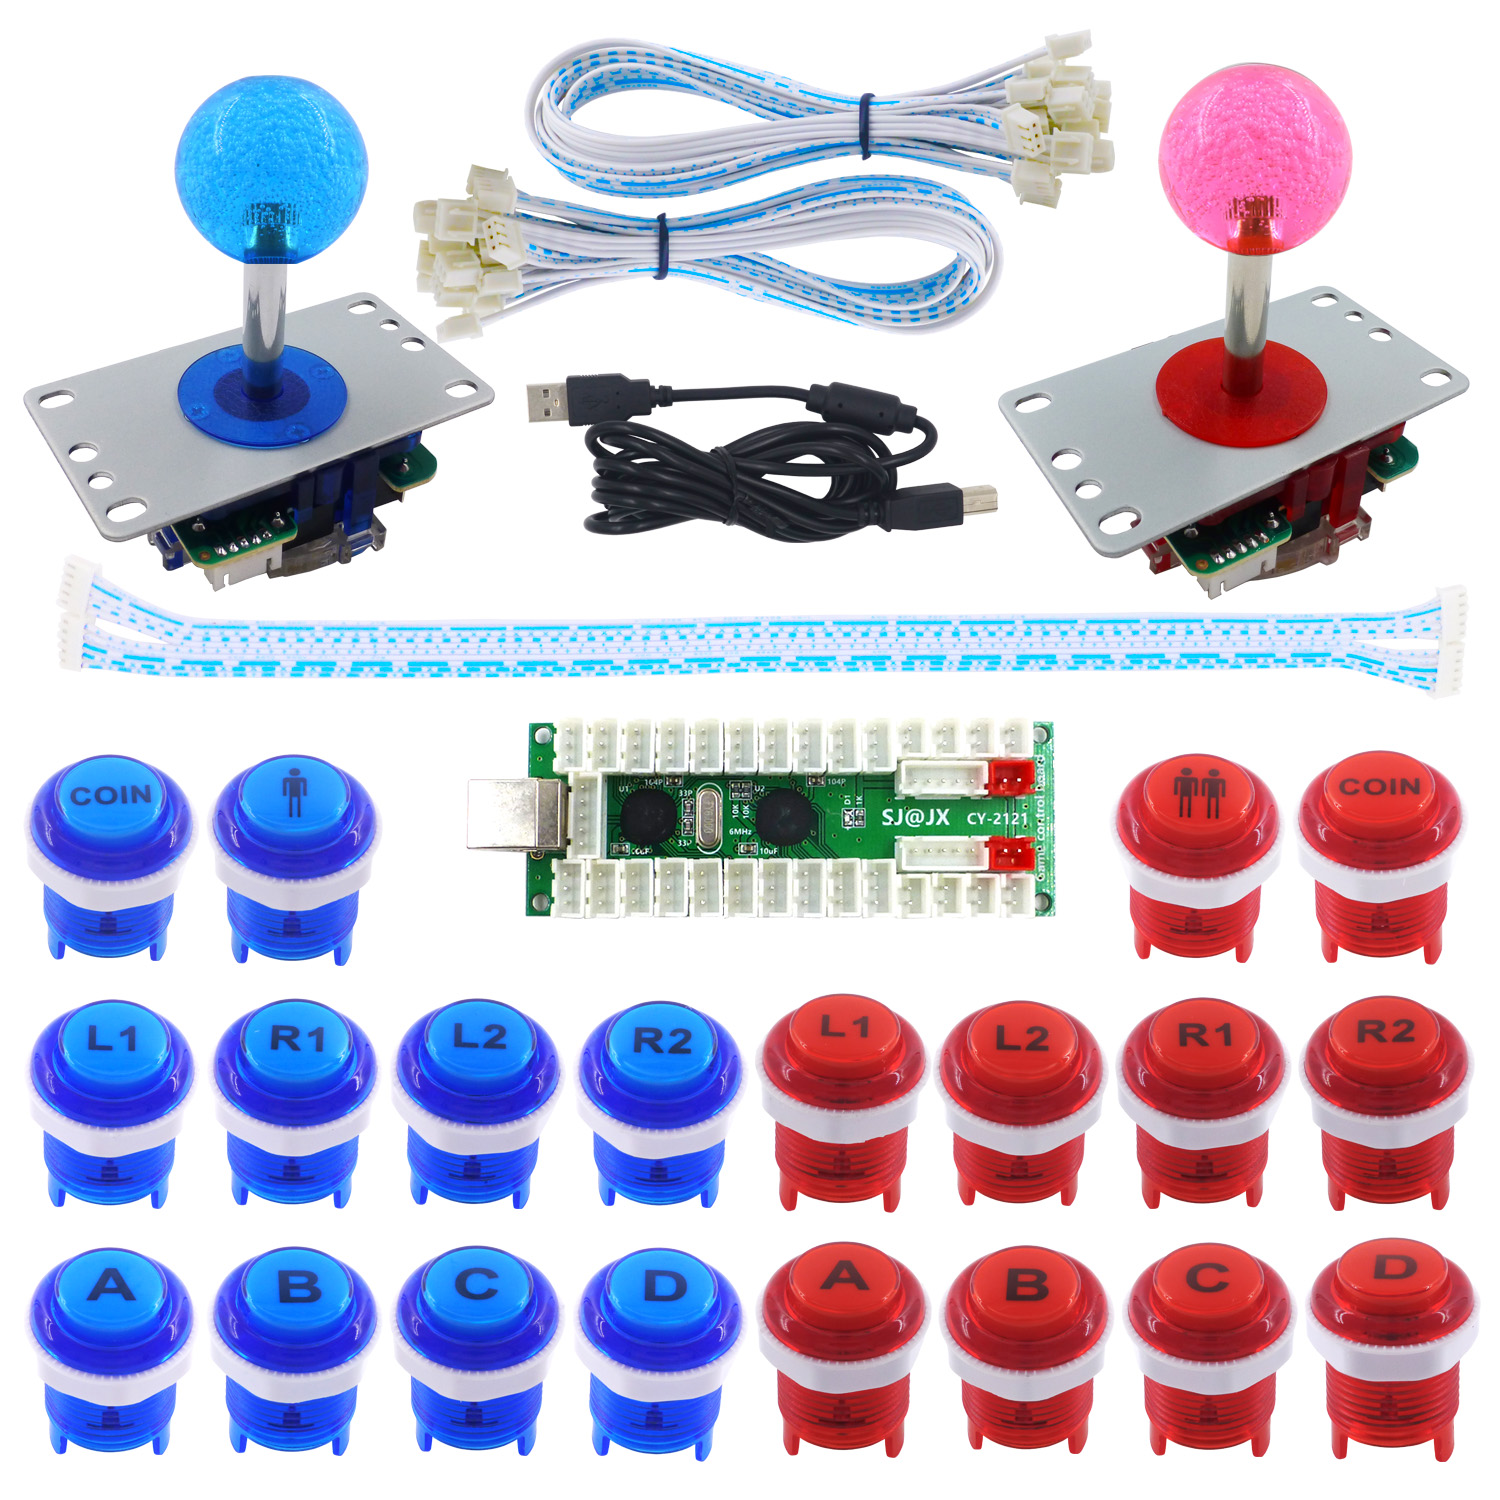 SJ@JX 2 Player Arcade Game DIY Kit LED Button Controller 8 Way Joystick USB Encoder for PC MAME Retro